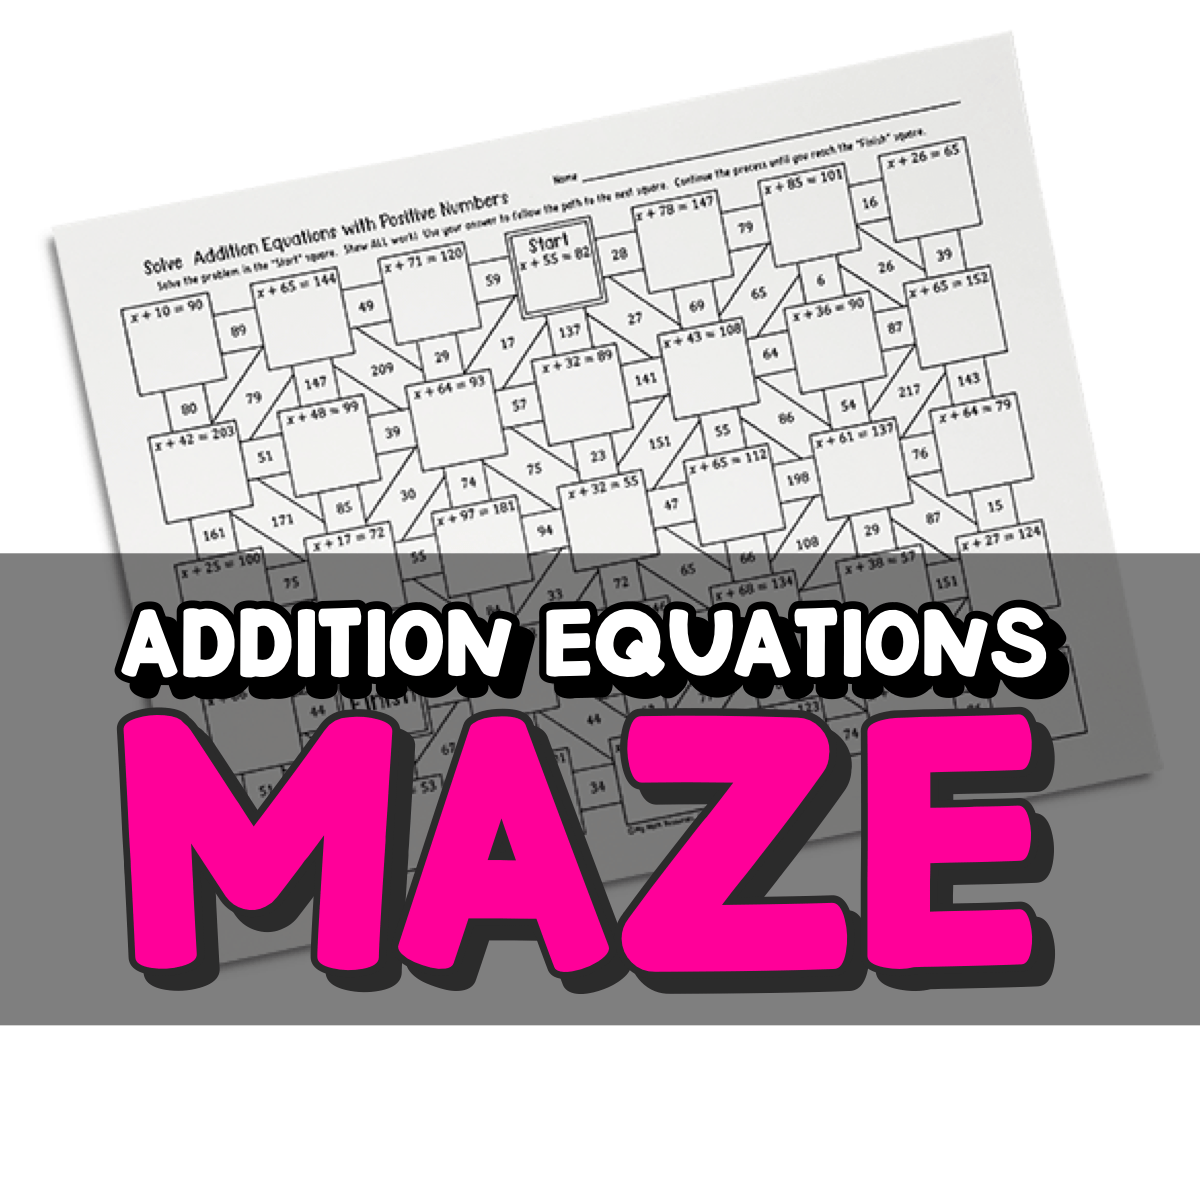 Addition Equations Maze